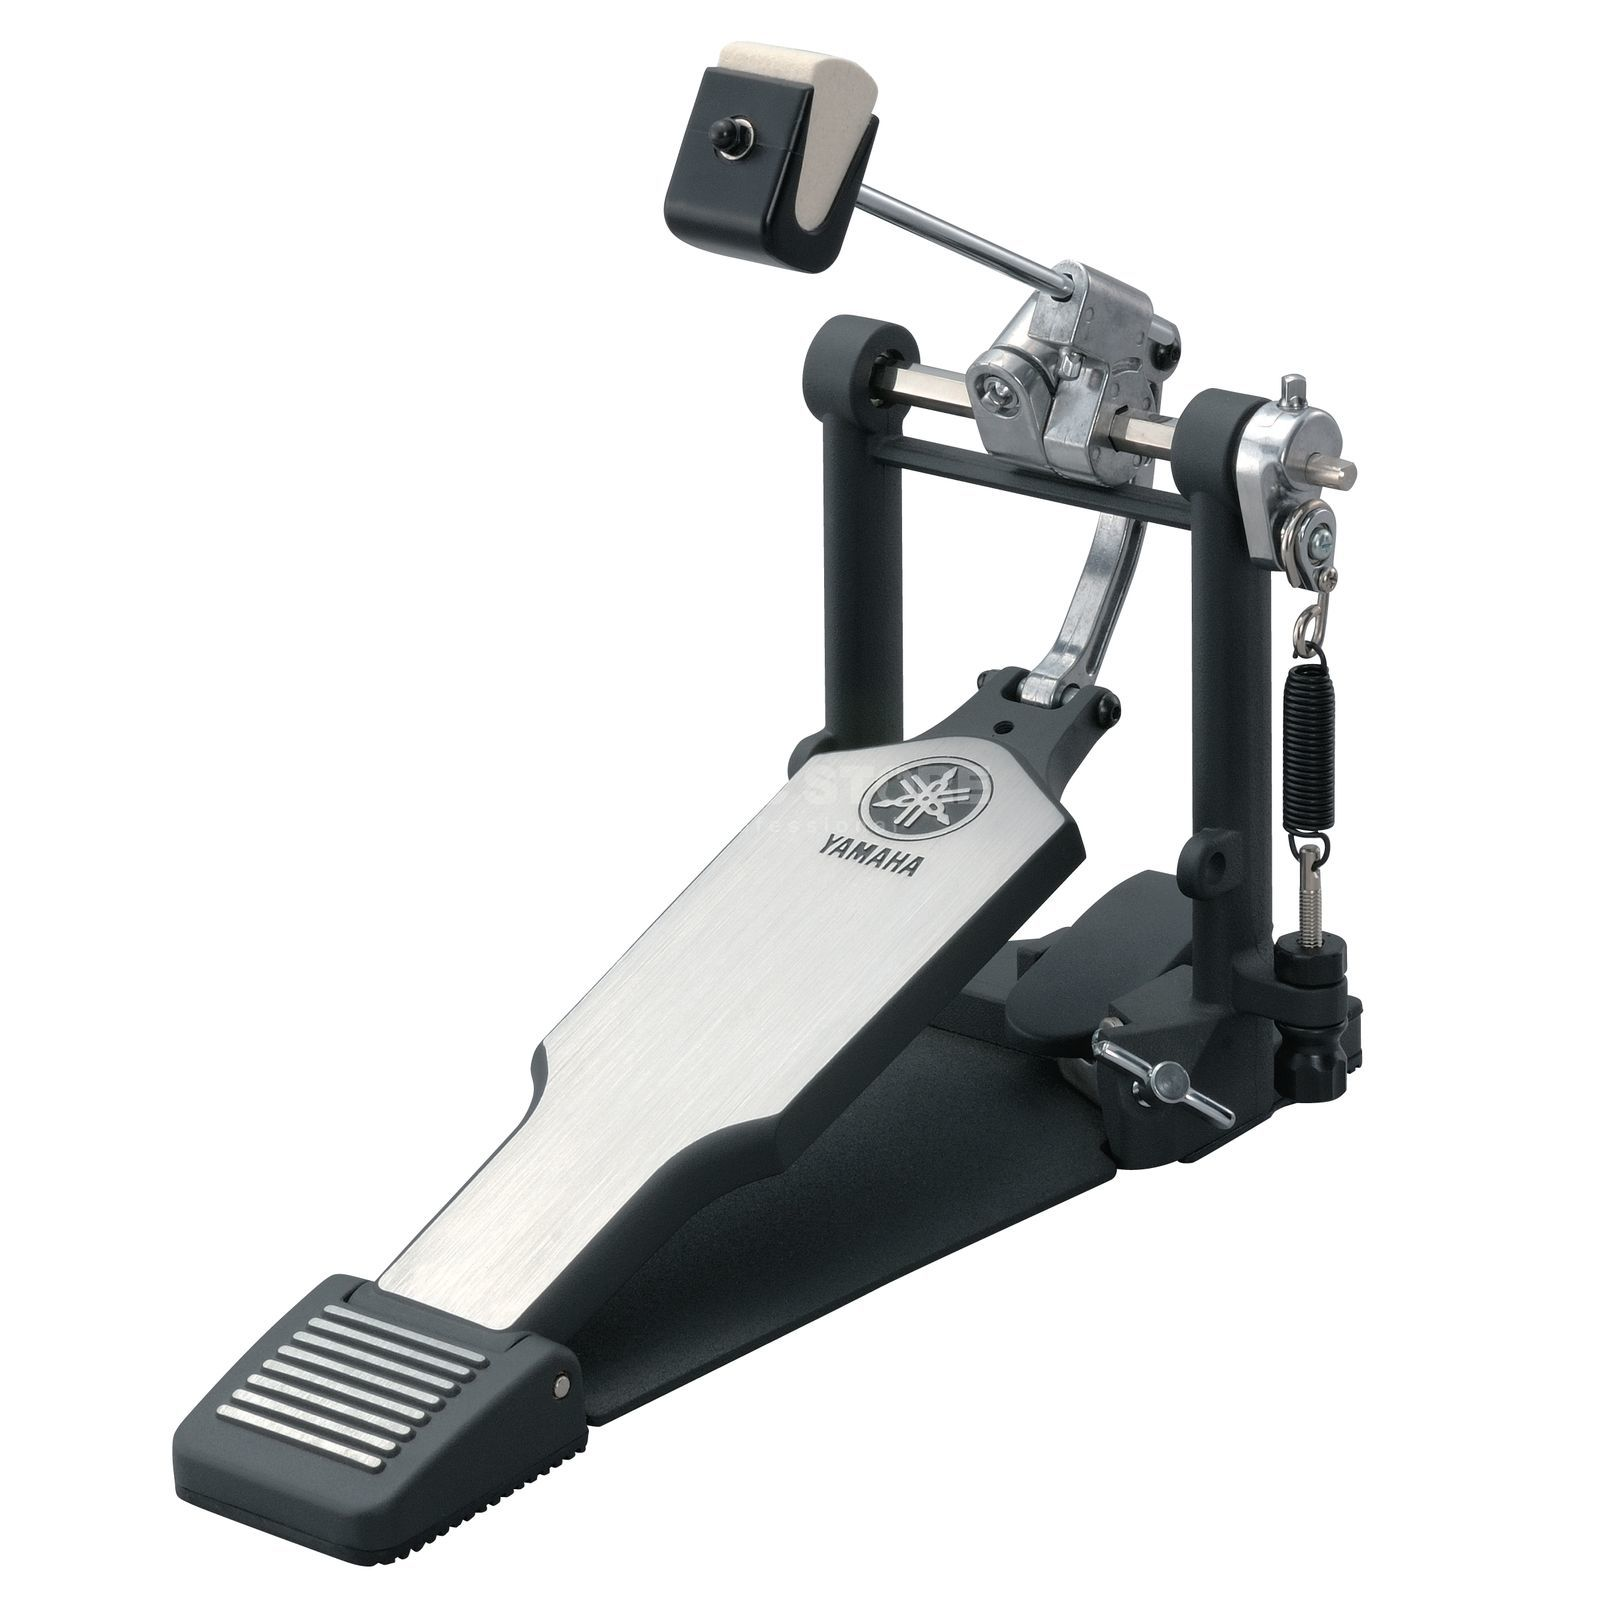 Yamaha Kick Pedal FP9500D, Direct Drive Product Image